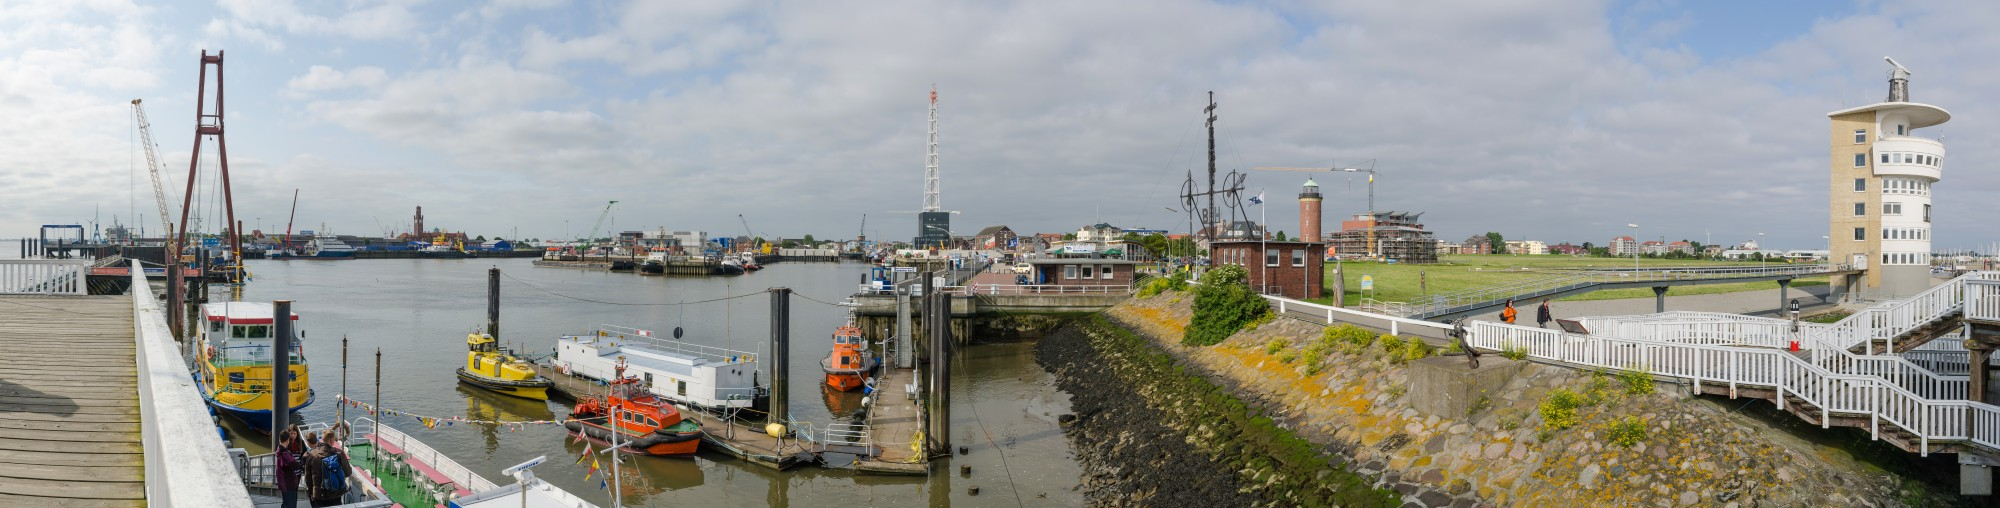 Panorama Hafen Cuxhaven Alte Liebe 2013